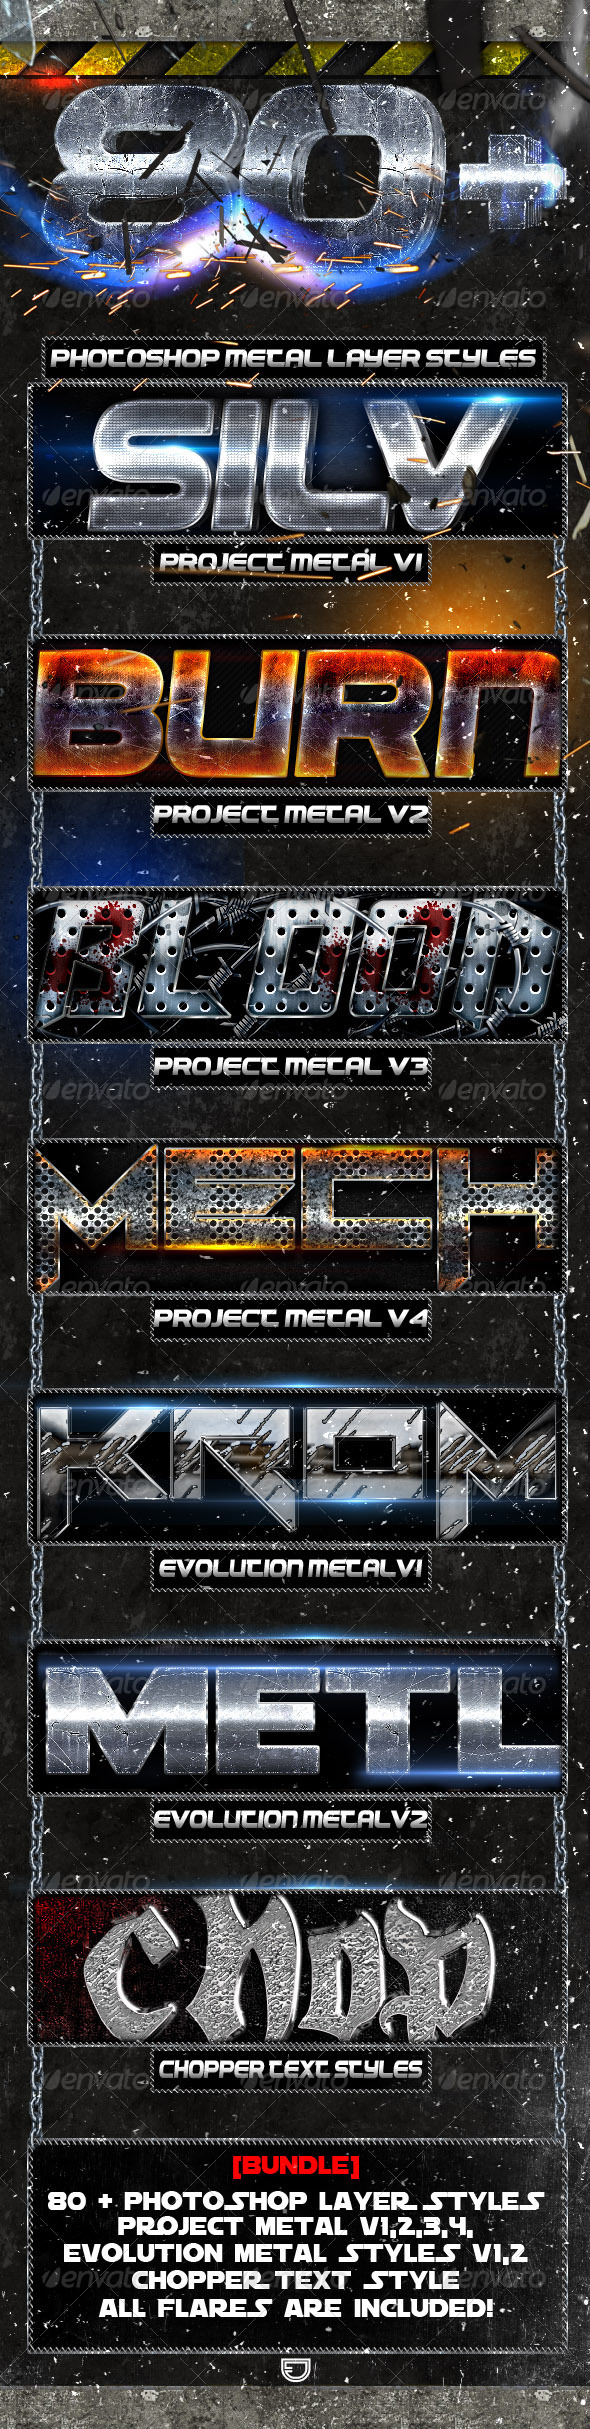 [Bundle] Project Metal - Photoshop Text Styles - Photoshop Add-ons